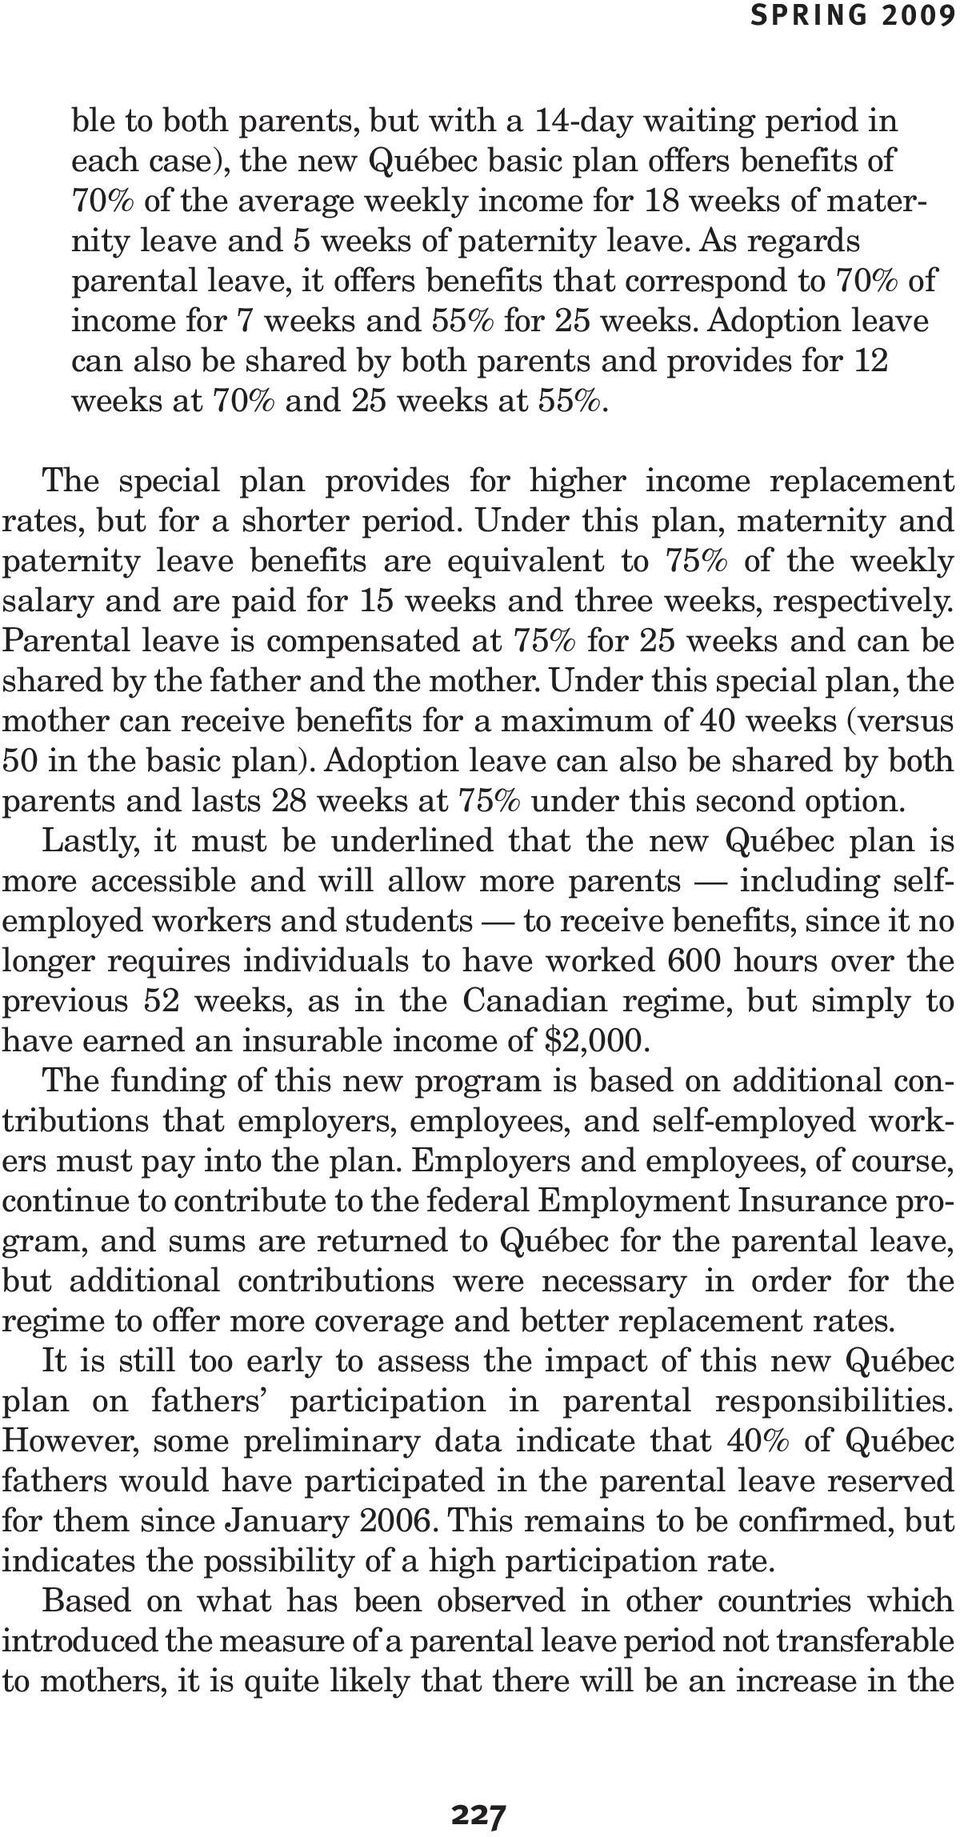 Adoption leave can also be shared by both parents and provides for 12 weeks at 70% and 25 weeks at 55%. The special plan provides for higher income replacement rates, but for a shorter period.